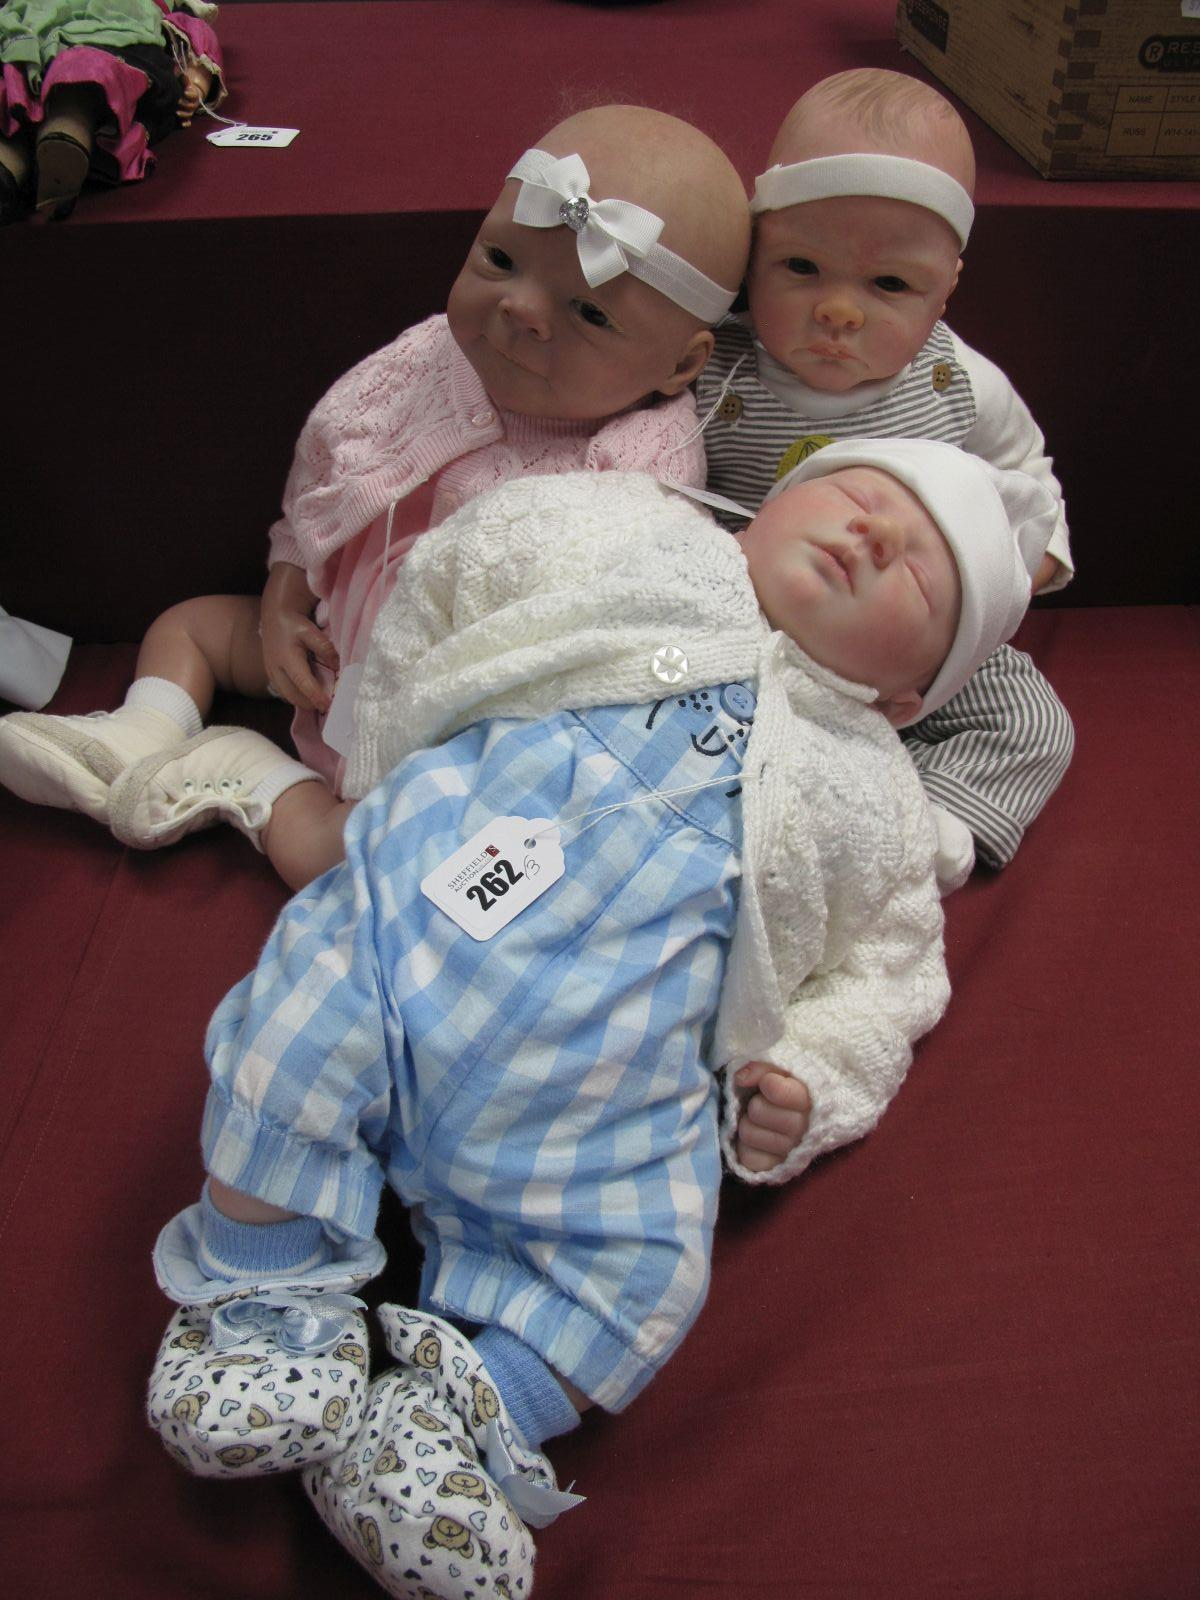 An Evelina Wosnjuk Baby Girl, 52cm high, a baby boy unmarked, 45cm high, and another baby girl by